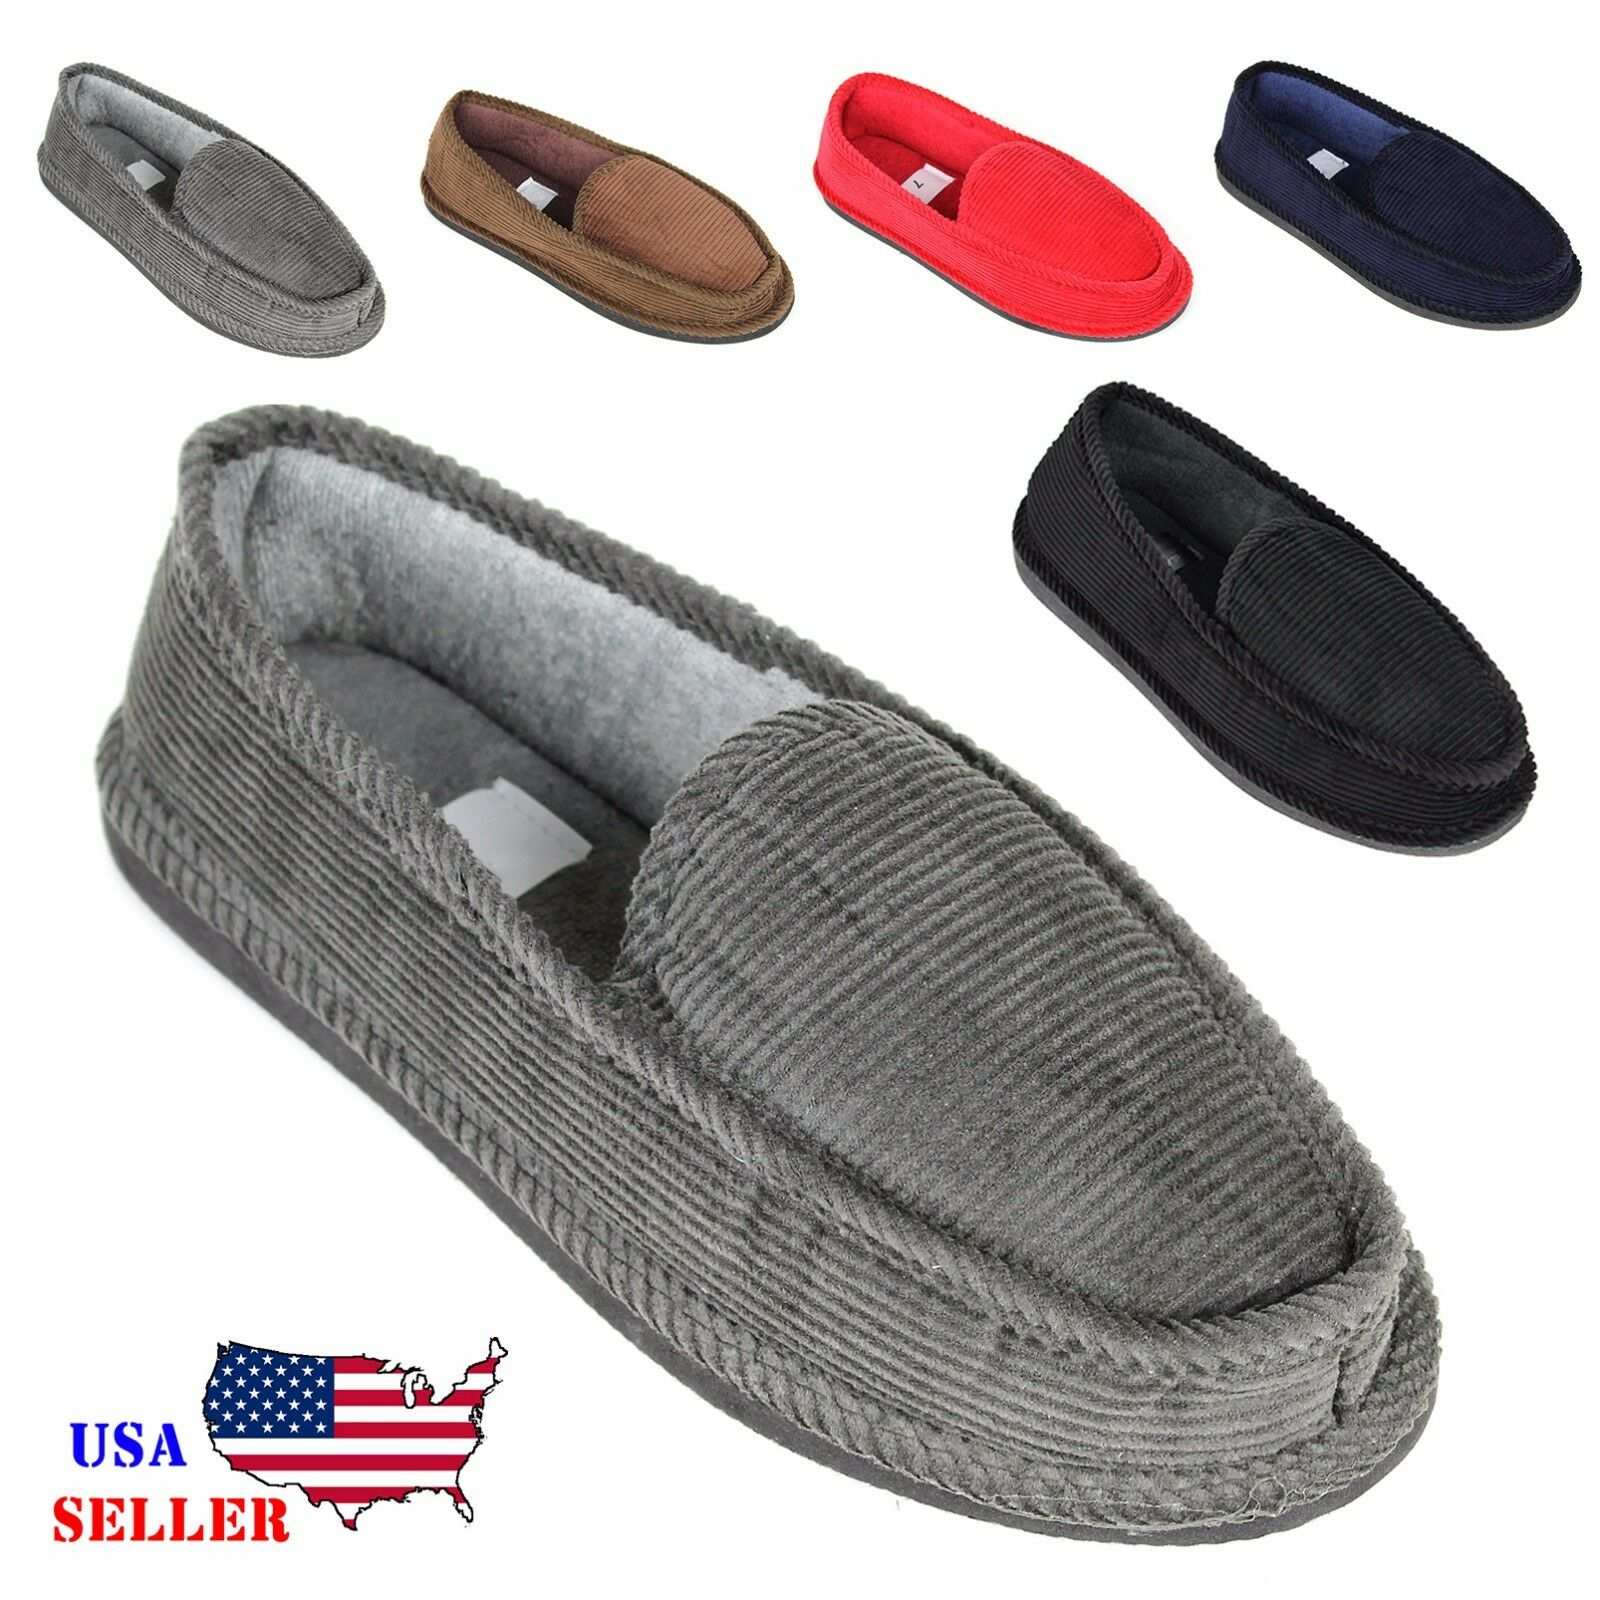 Hombre SPOT ON COMFORTABLE COSY SLIP ON NAVY NAVY ON SLIPPERS GS65128 Talla 7-12 253812